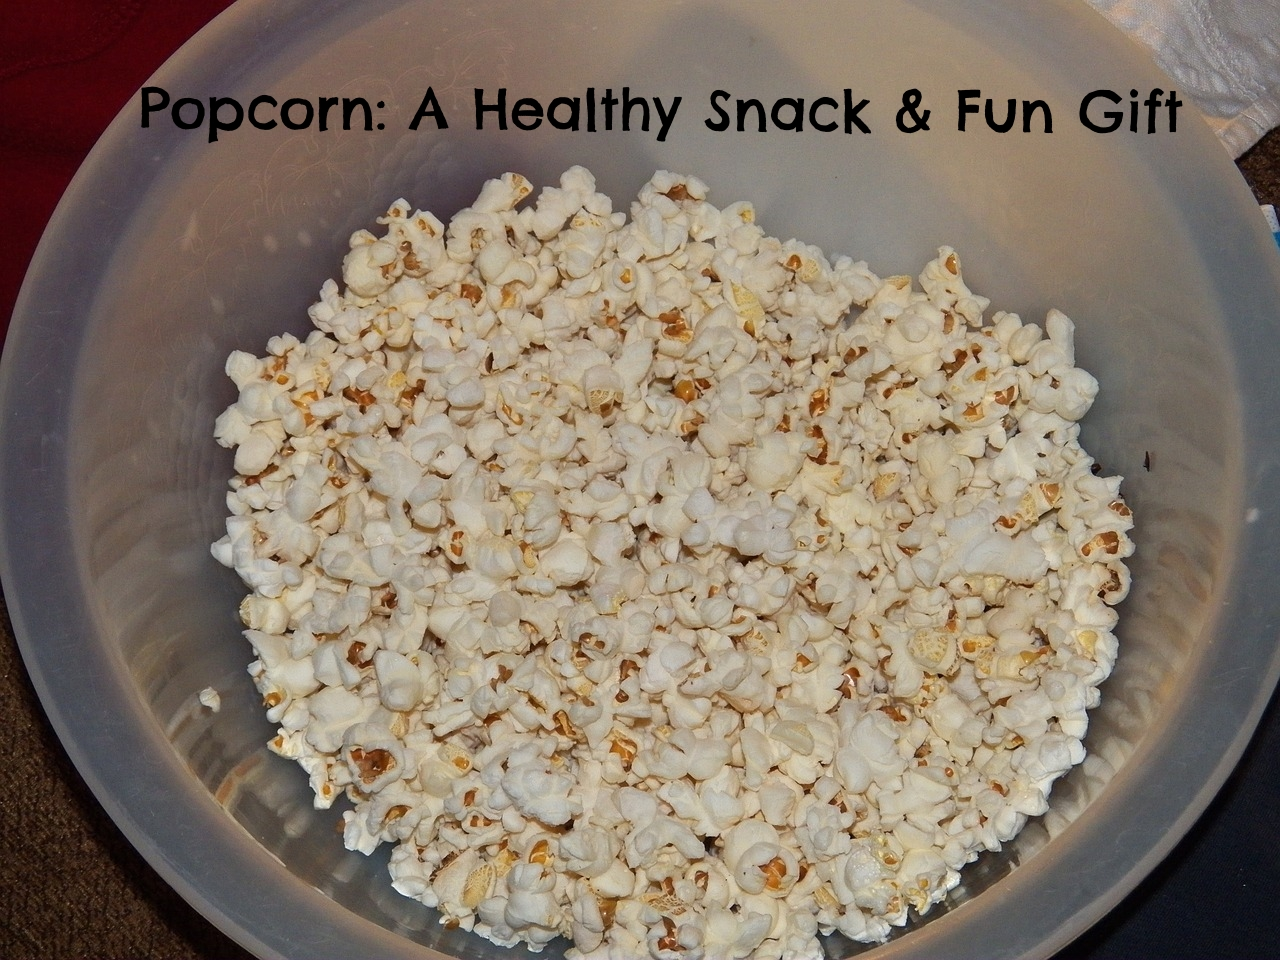 Popcorn: A Healthy Snack and Fun Gift